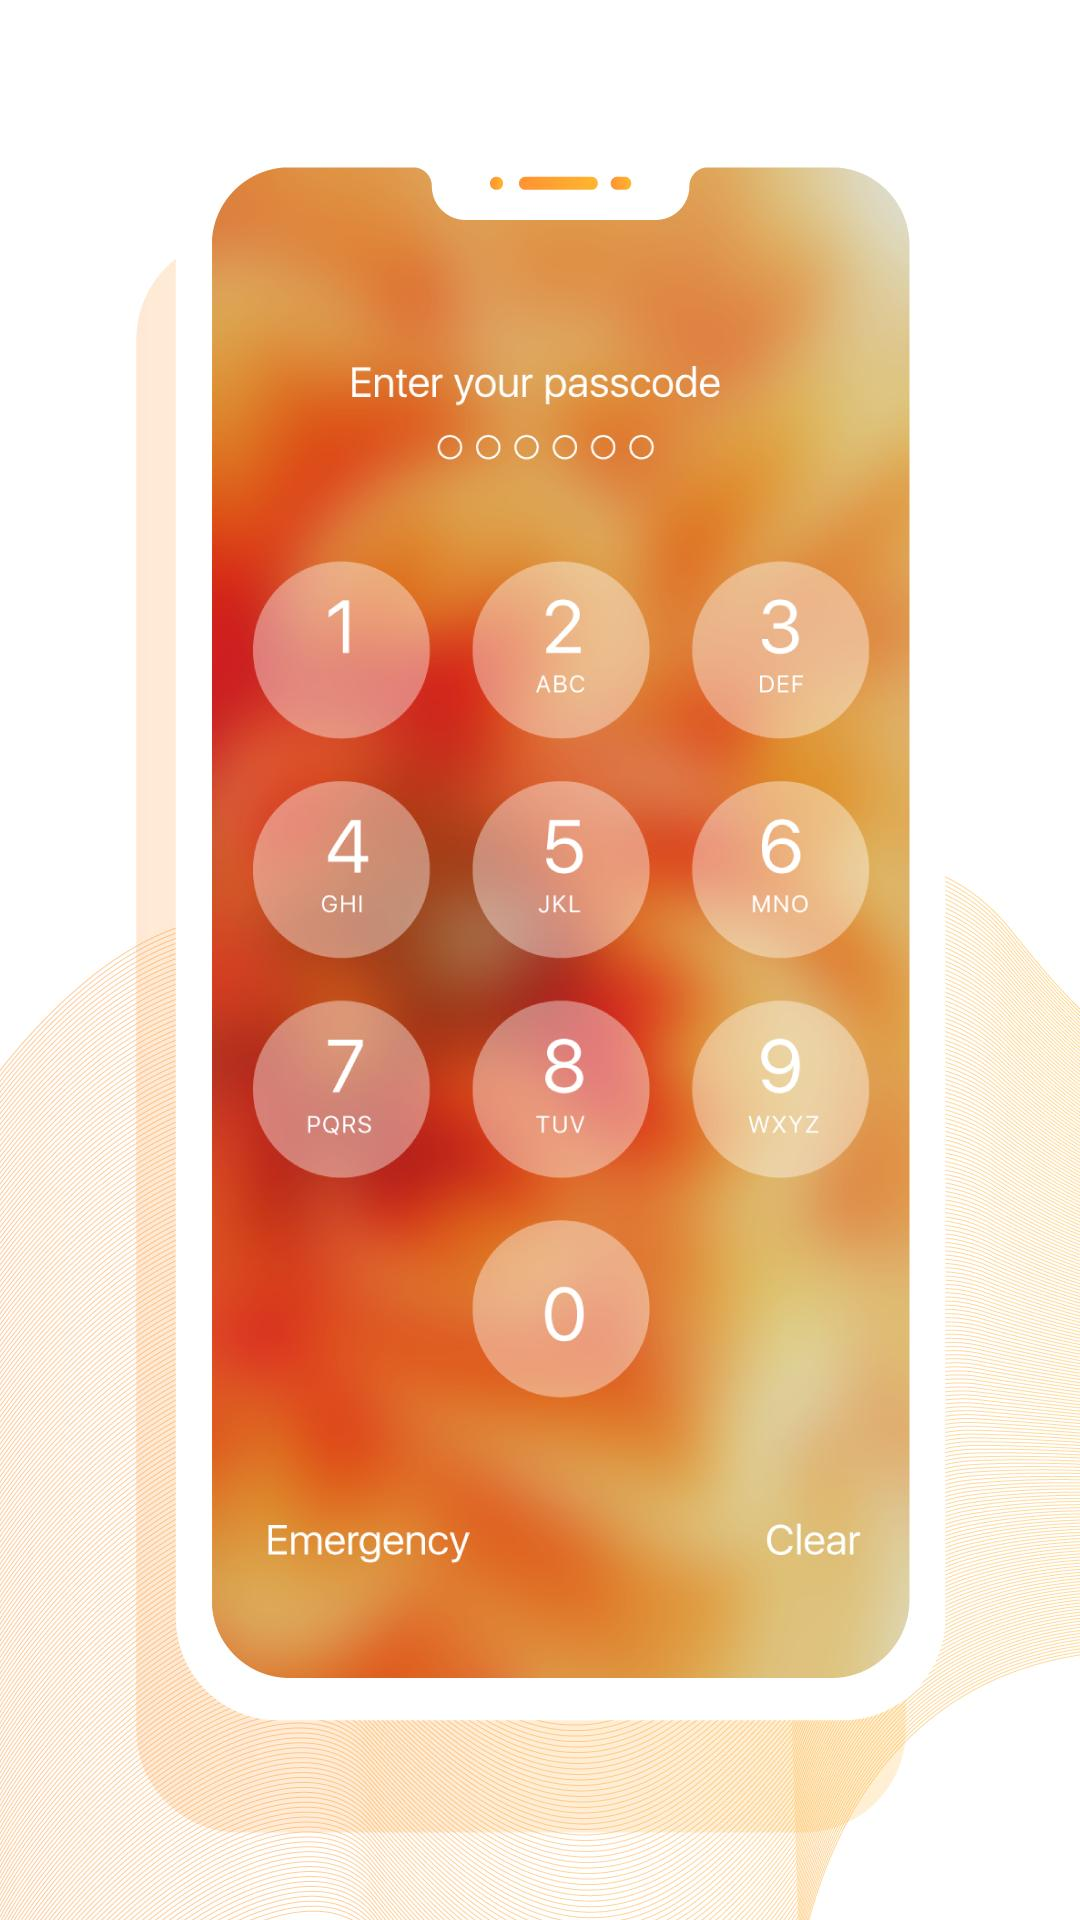 IOS12 Lock Screen